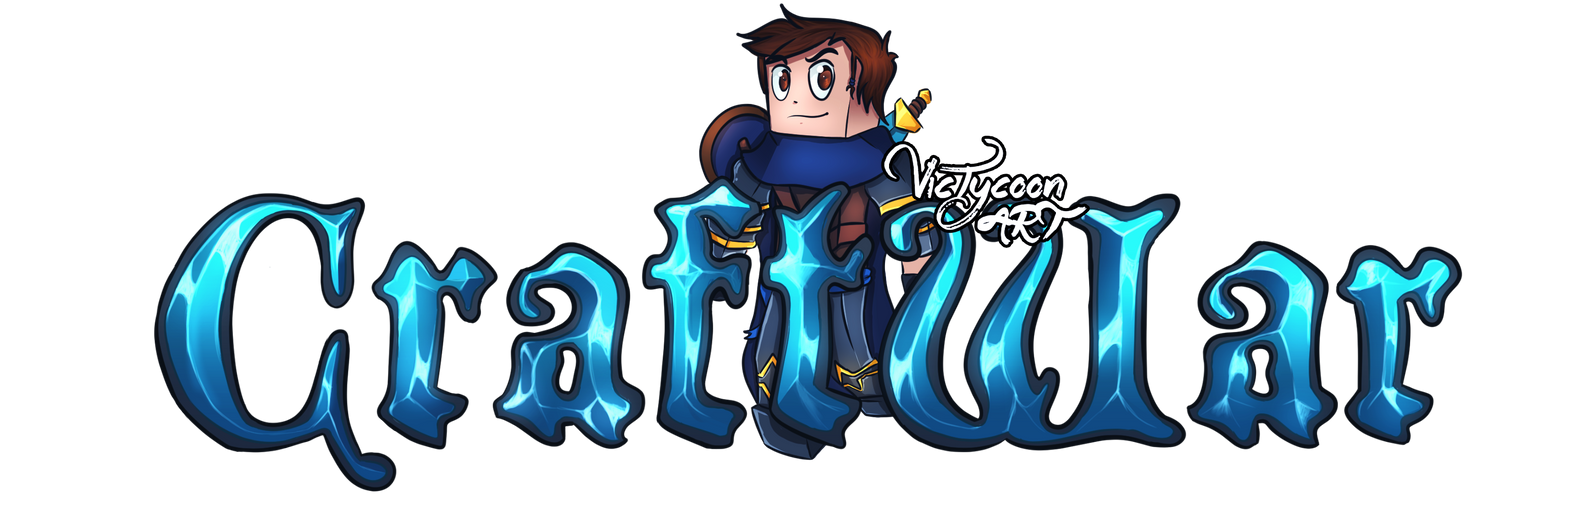 CraftWar Logo - Minecraft Server by VicTycoon on DeviantArt